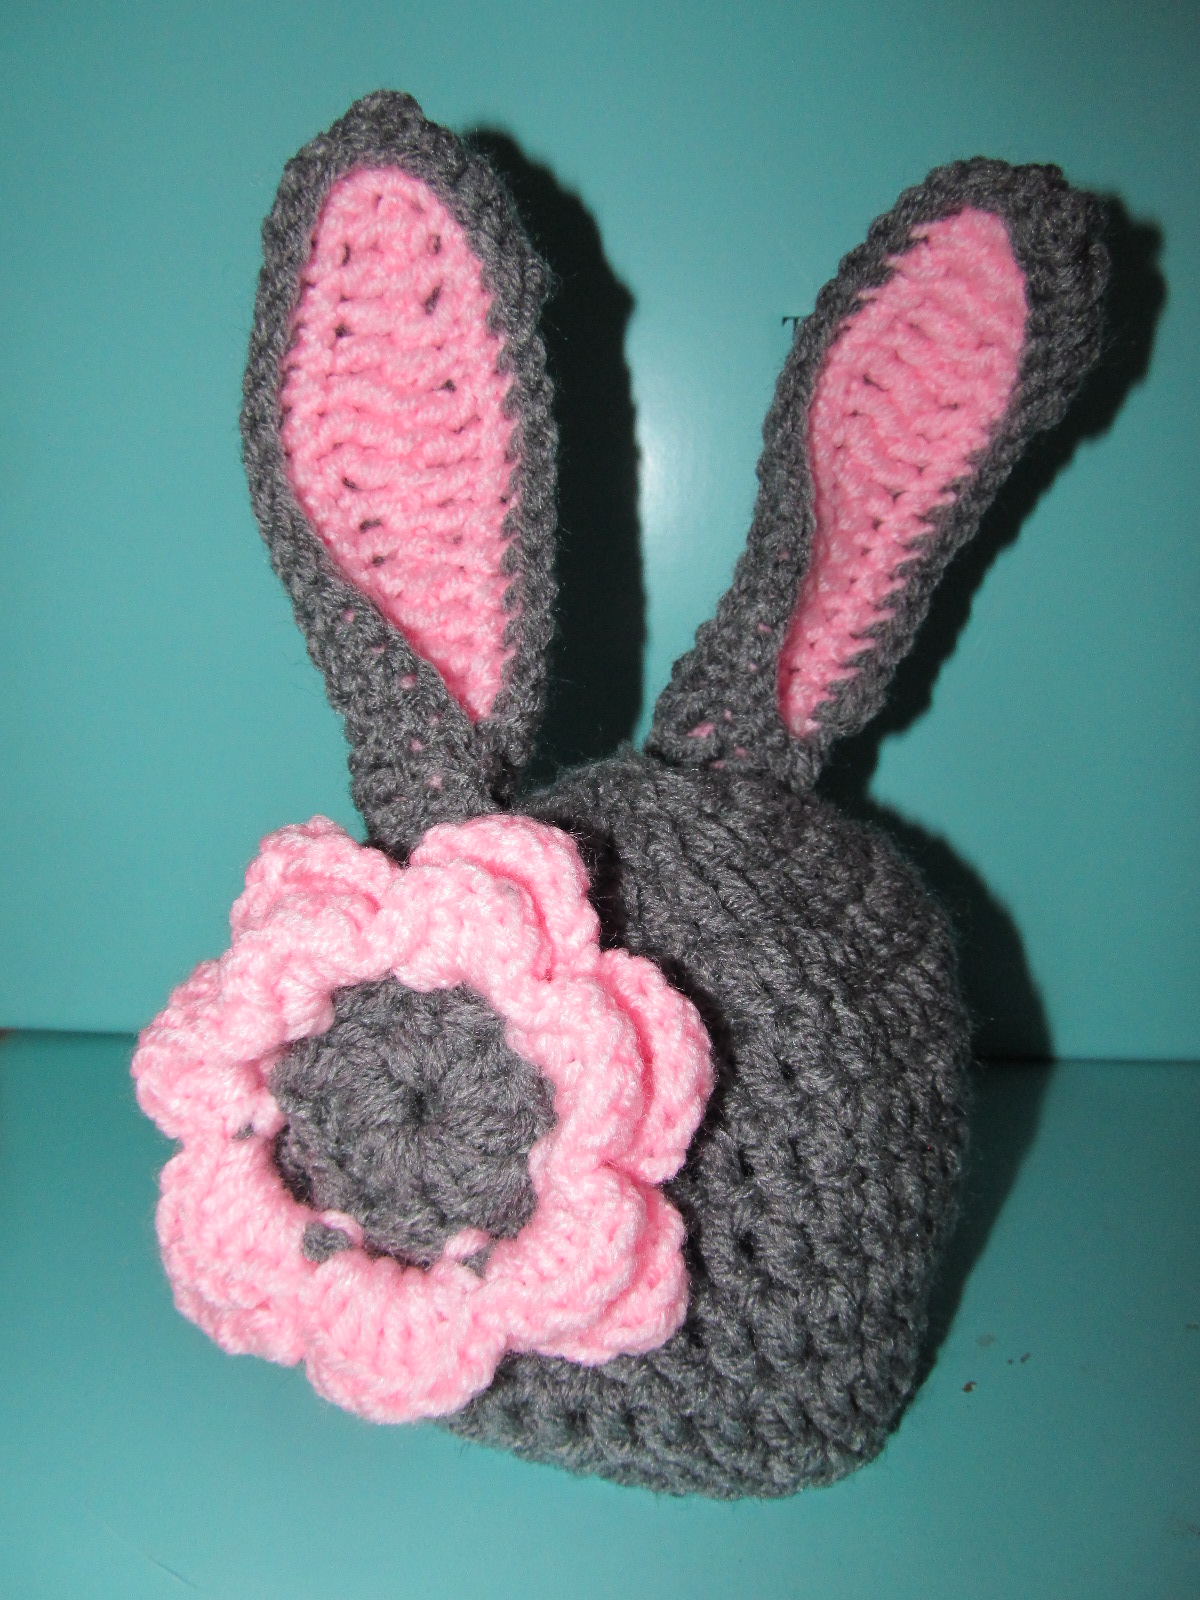 The Hat Uses Worsted Weight Yarn And A Size I Crochet Hook